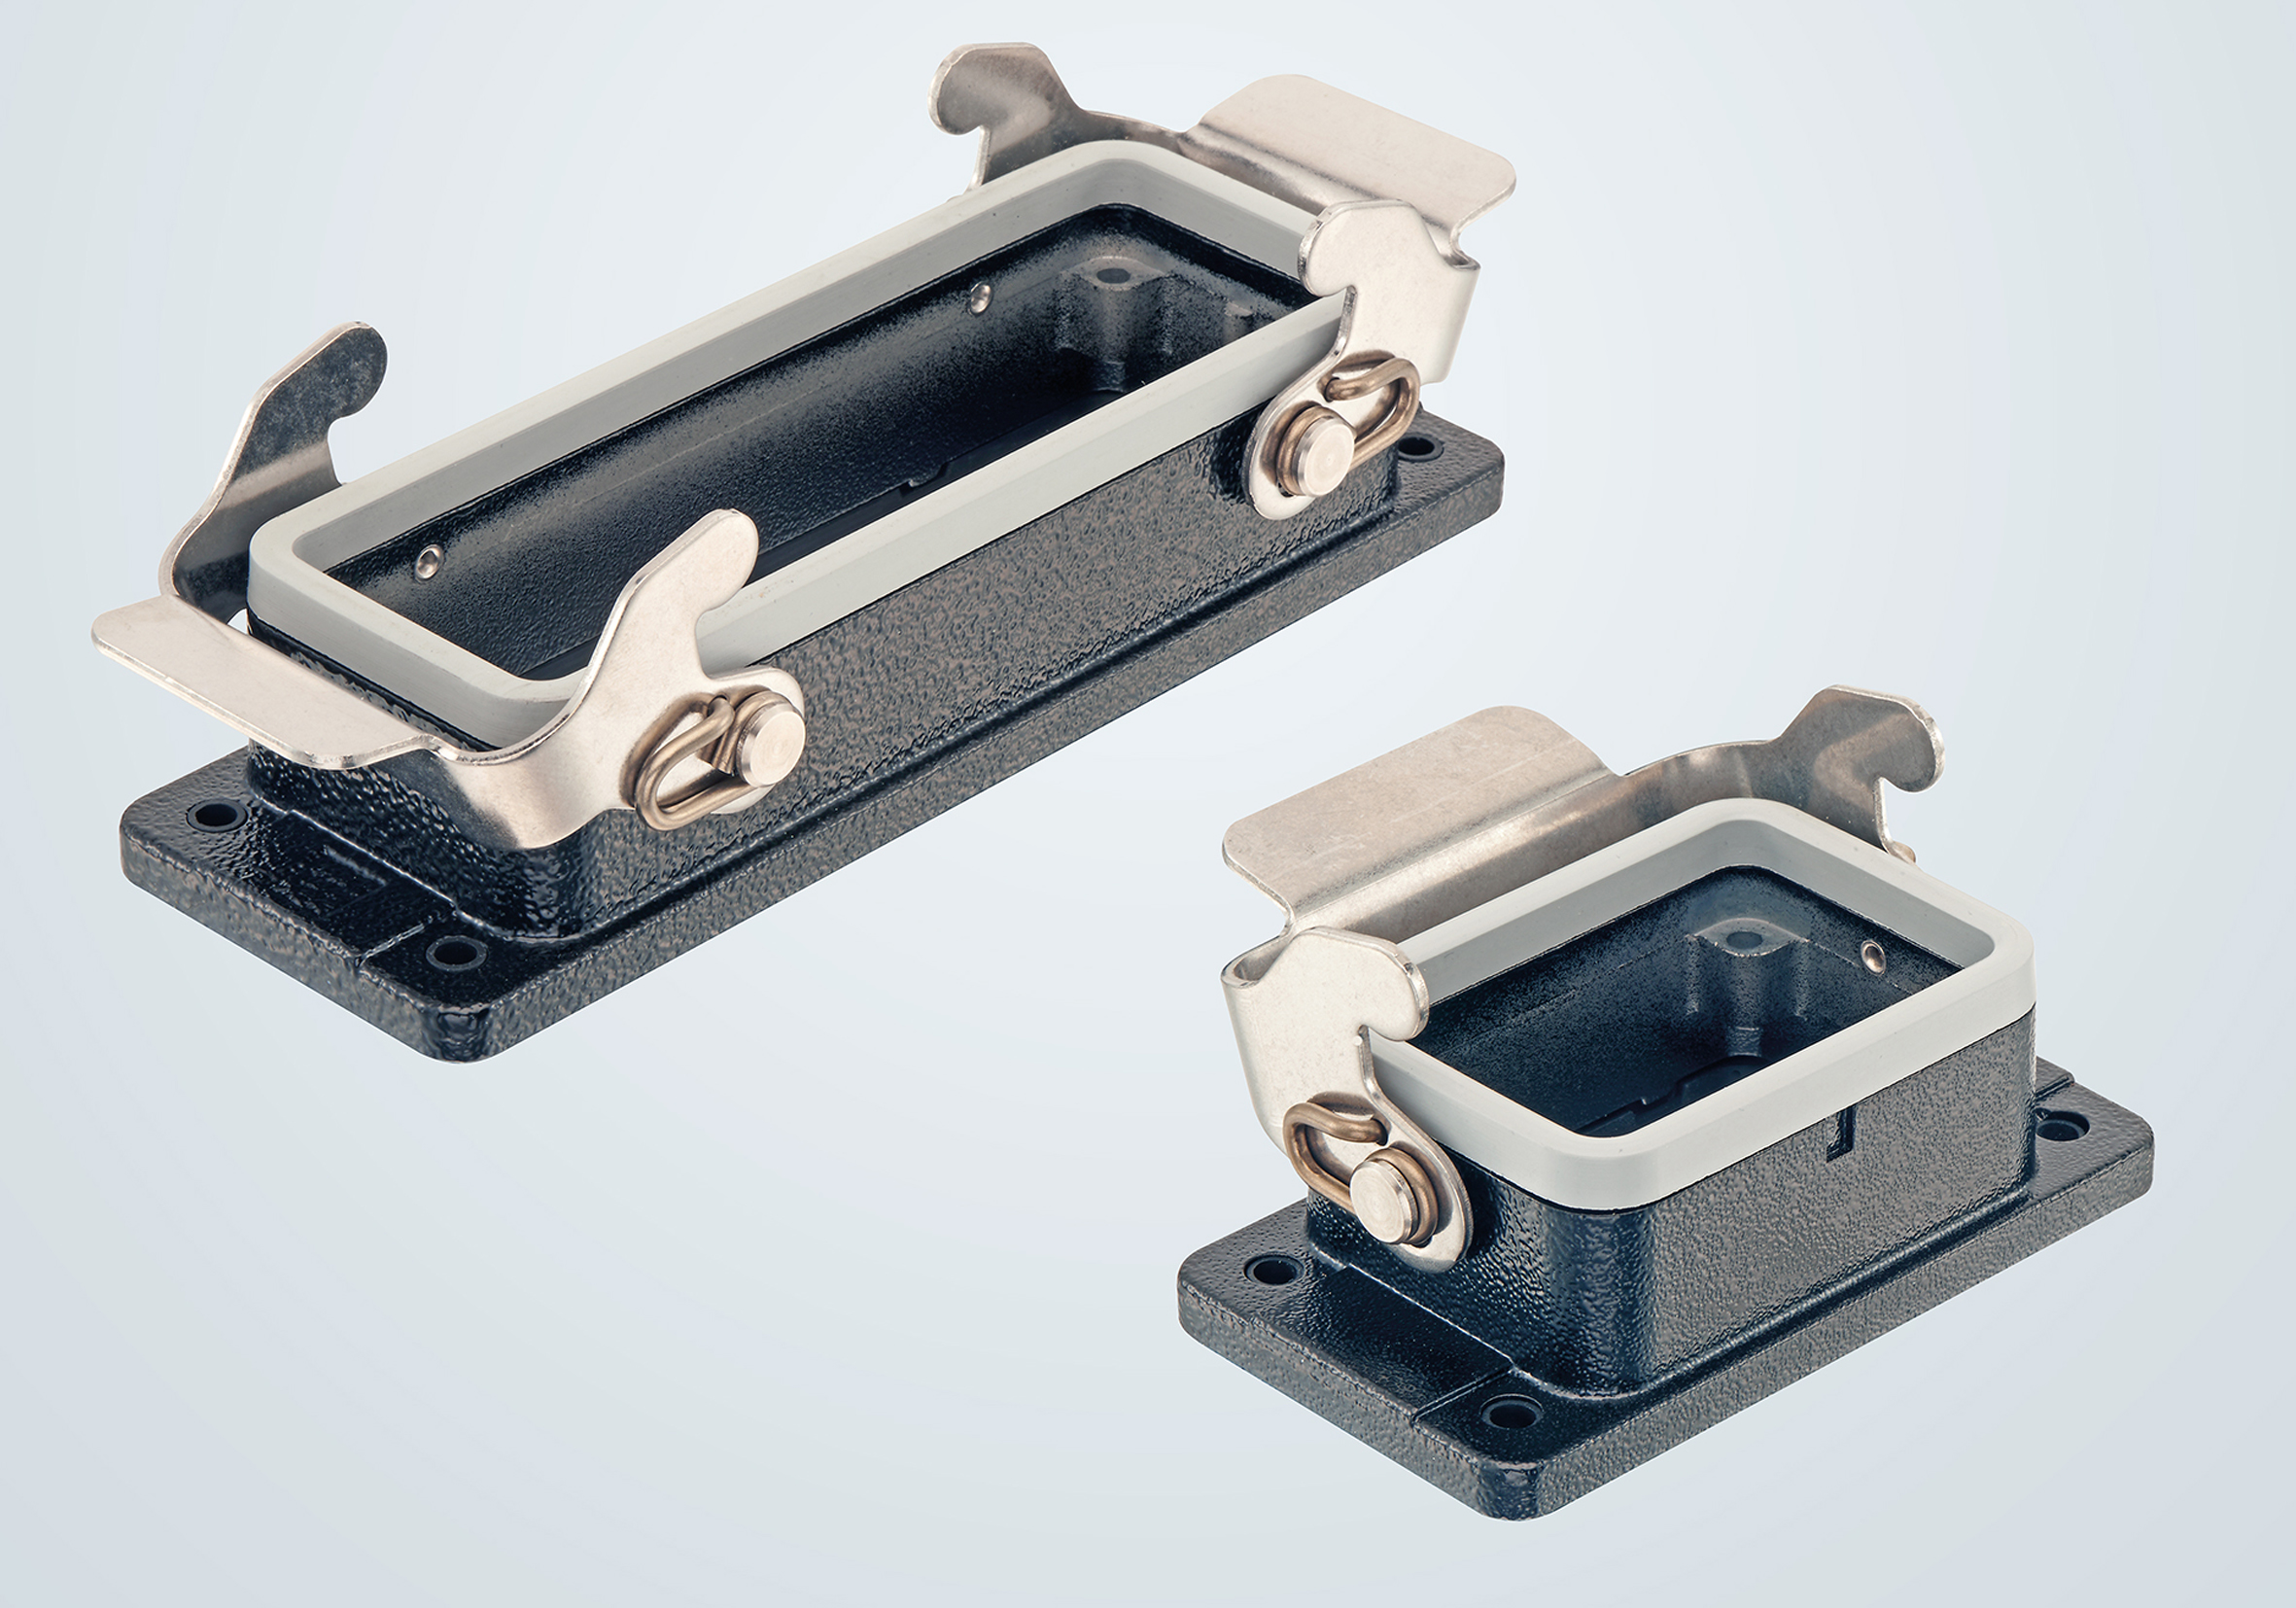 New connector housings provide protection against immersion in water